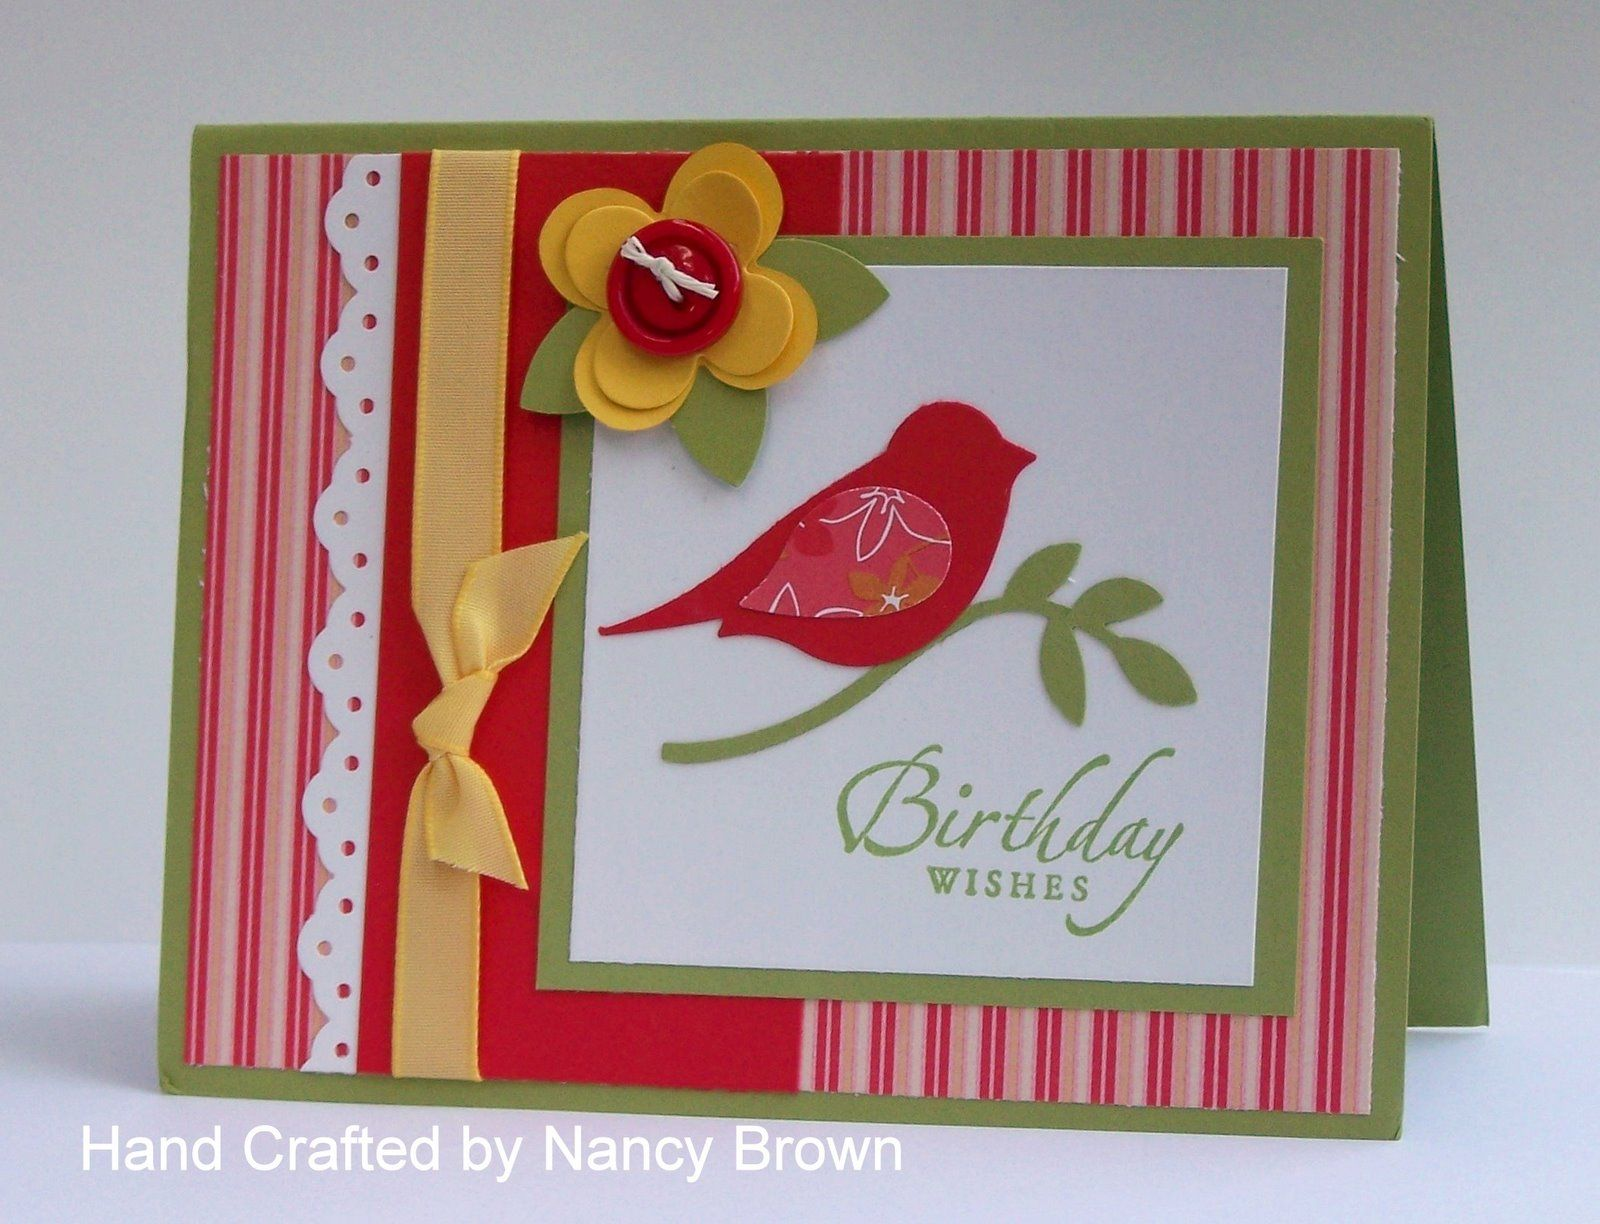 Stampin Up Birthday Card Ideas Birthday Cards Part 1 – Pinterest Stampin Up Birthday Cards